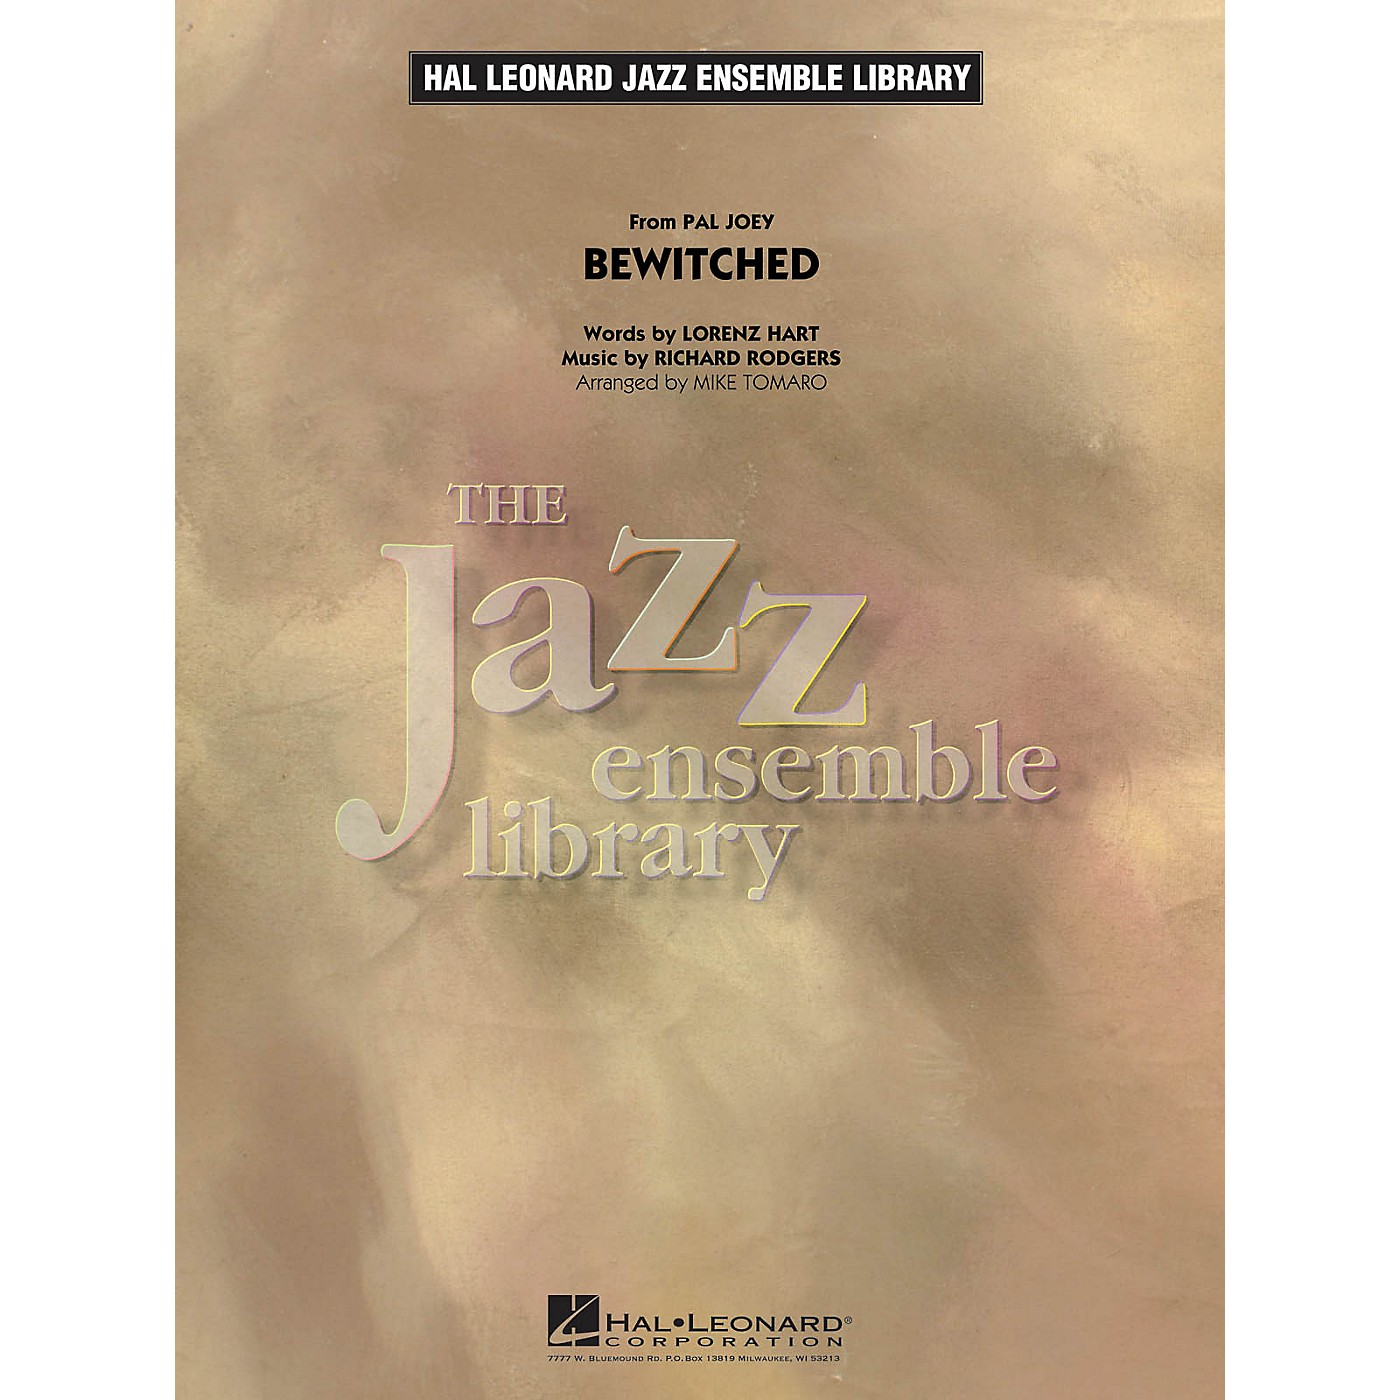 Hal Leonard Bewitched Jazz Band Level 4 Arranged by Mike Tomaro thumbnail